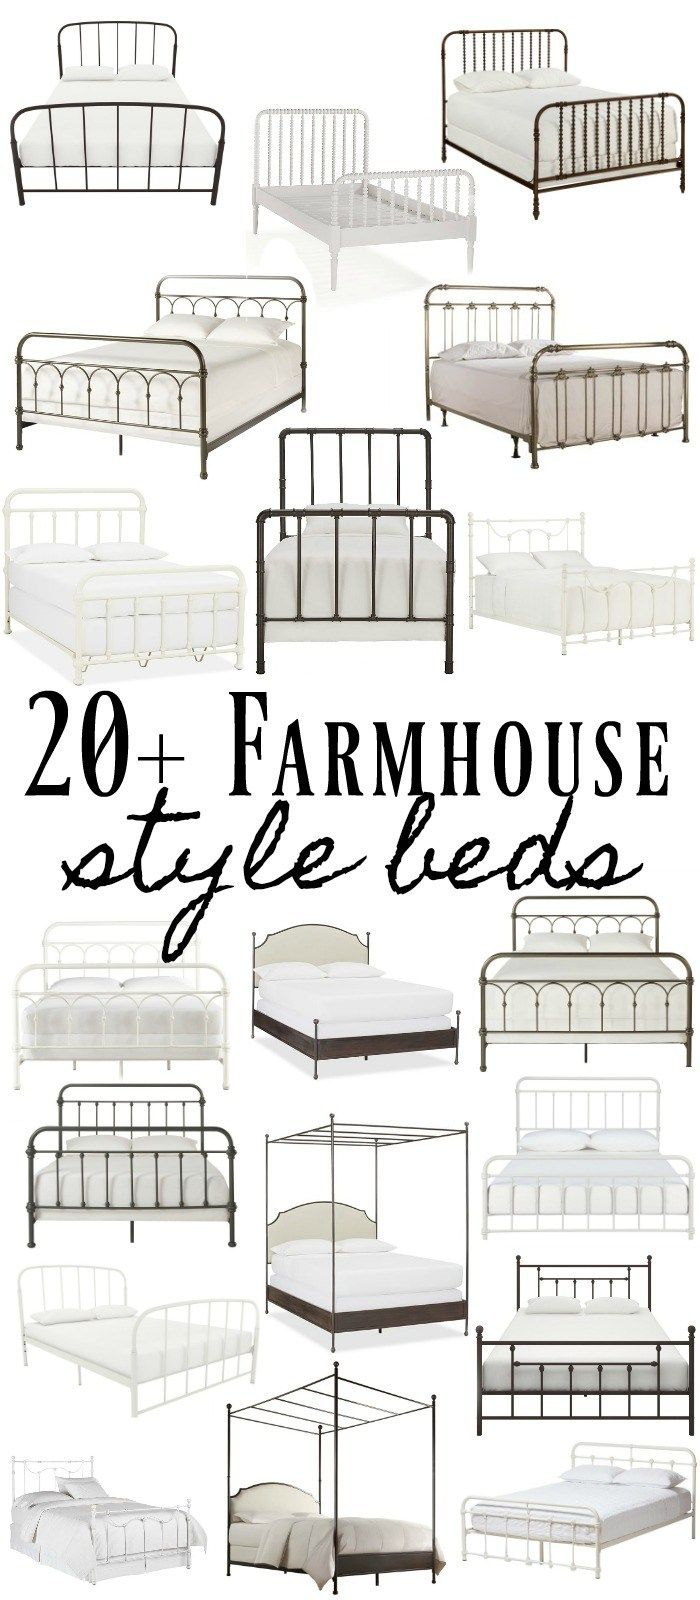 20+ Metal Farmhouse Style Beds